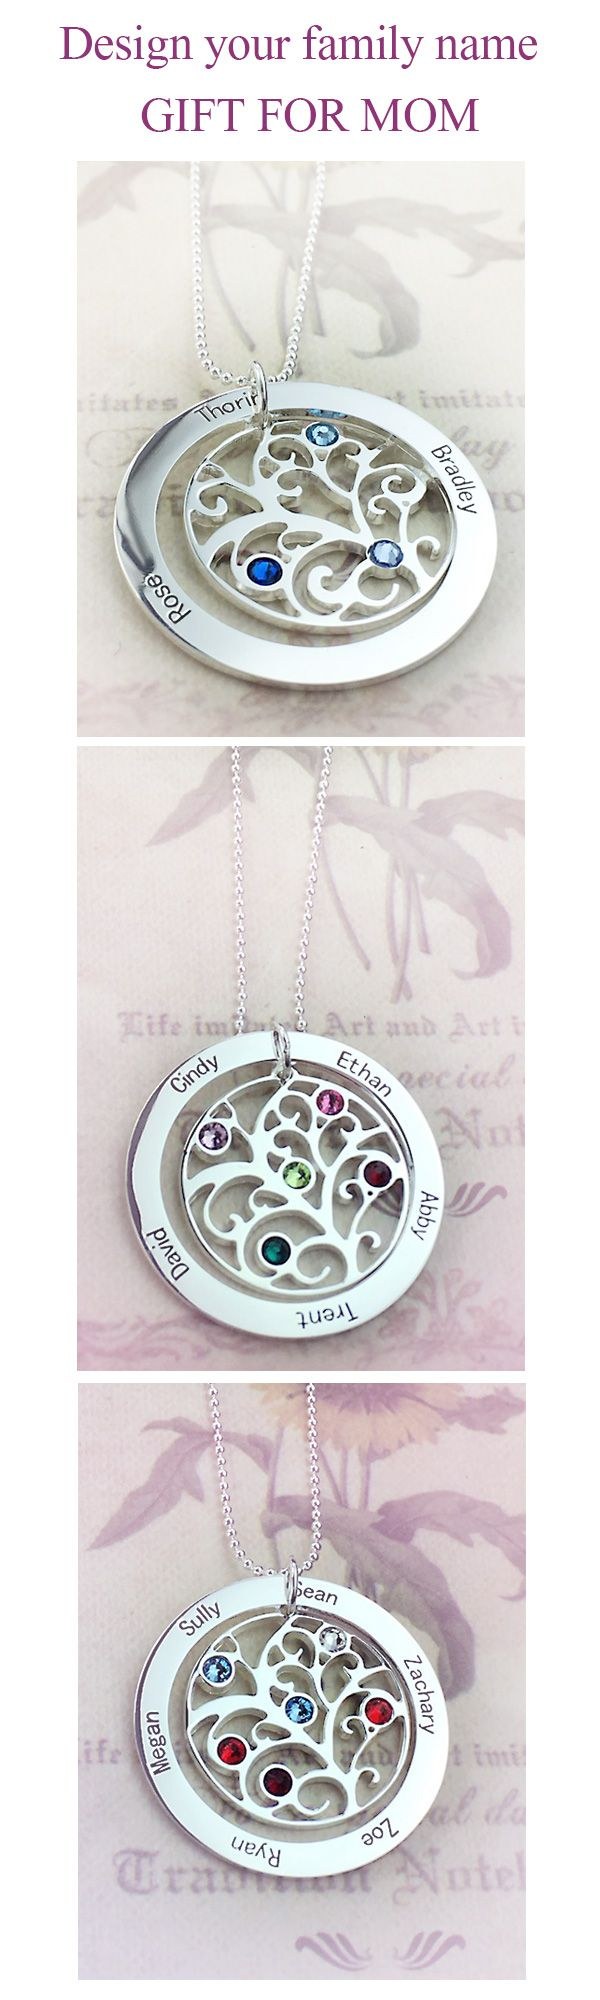 Create the perfect gift for Mom for Mother's Day, her birthday or any special occasion! Personalize this family tree necklace with your choice of name and birthstones.You love your family just from getnamenecklace.com